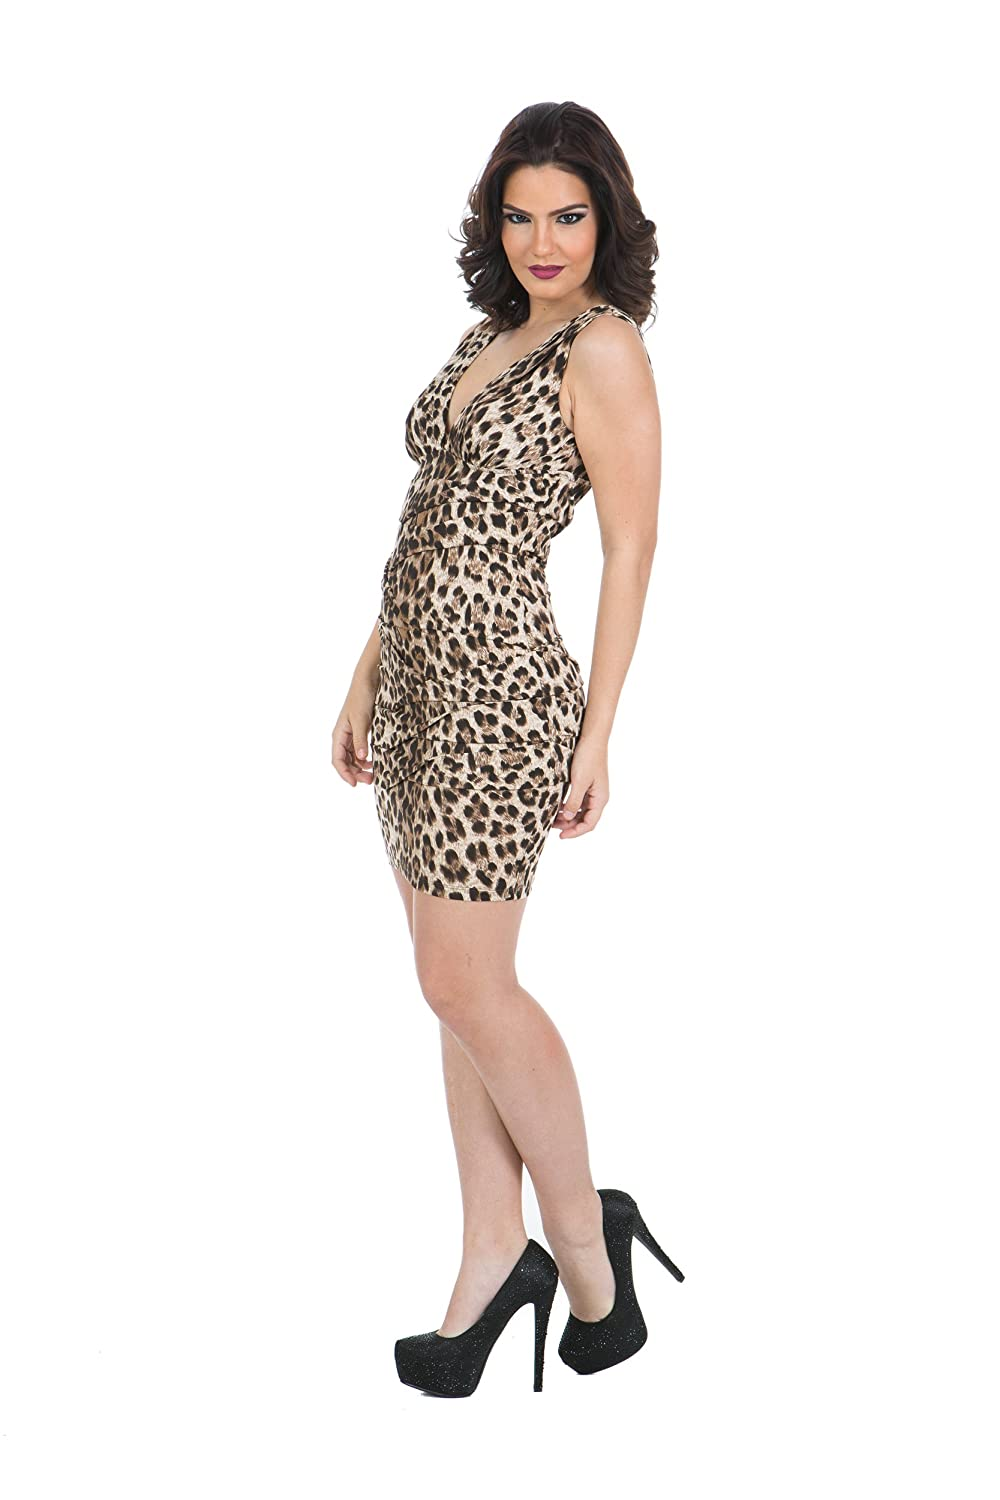 f3361e85f9 Amazon.com  Nikibiki Leopard V-neck Dress Medium  Clothing